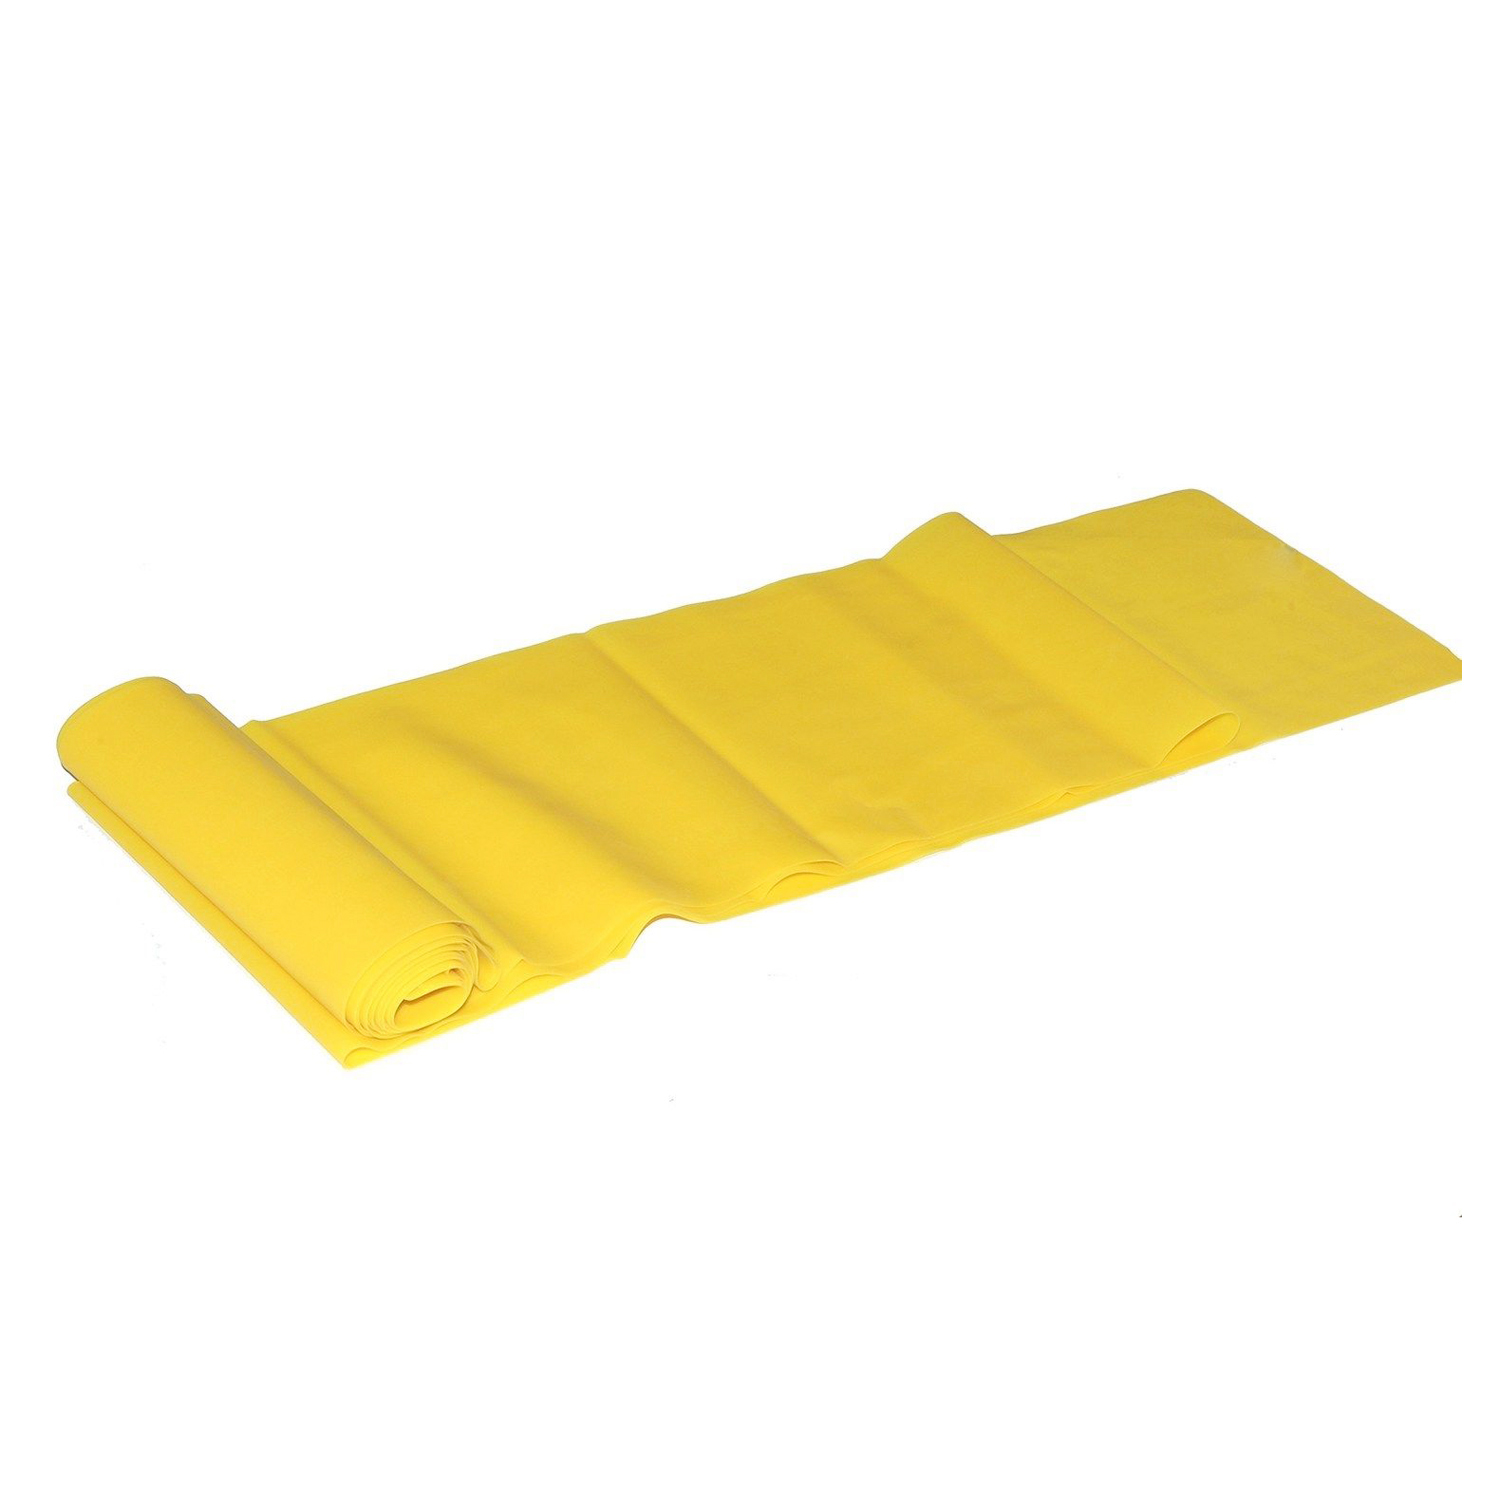 Yellow 1.5m Yoga Pilates Rubber Stretch Resistance Exercise Fitness